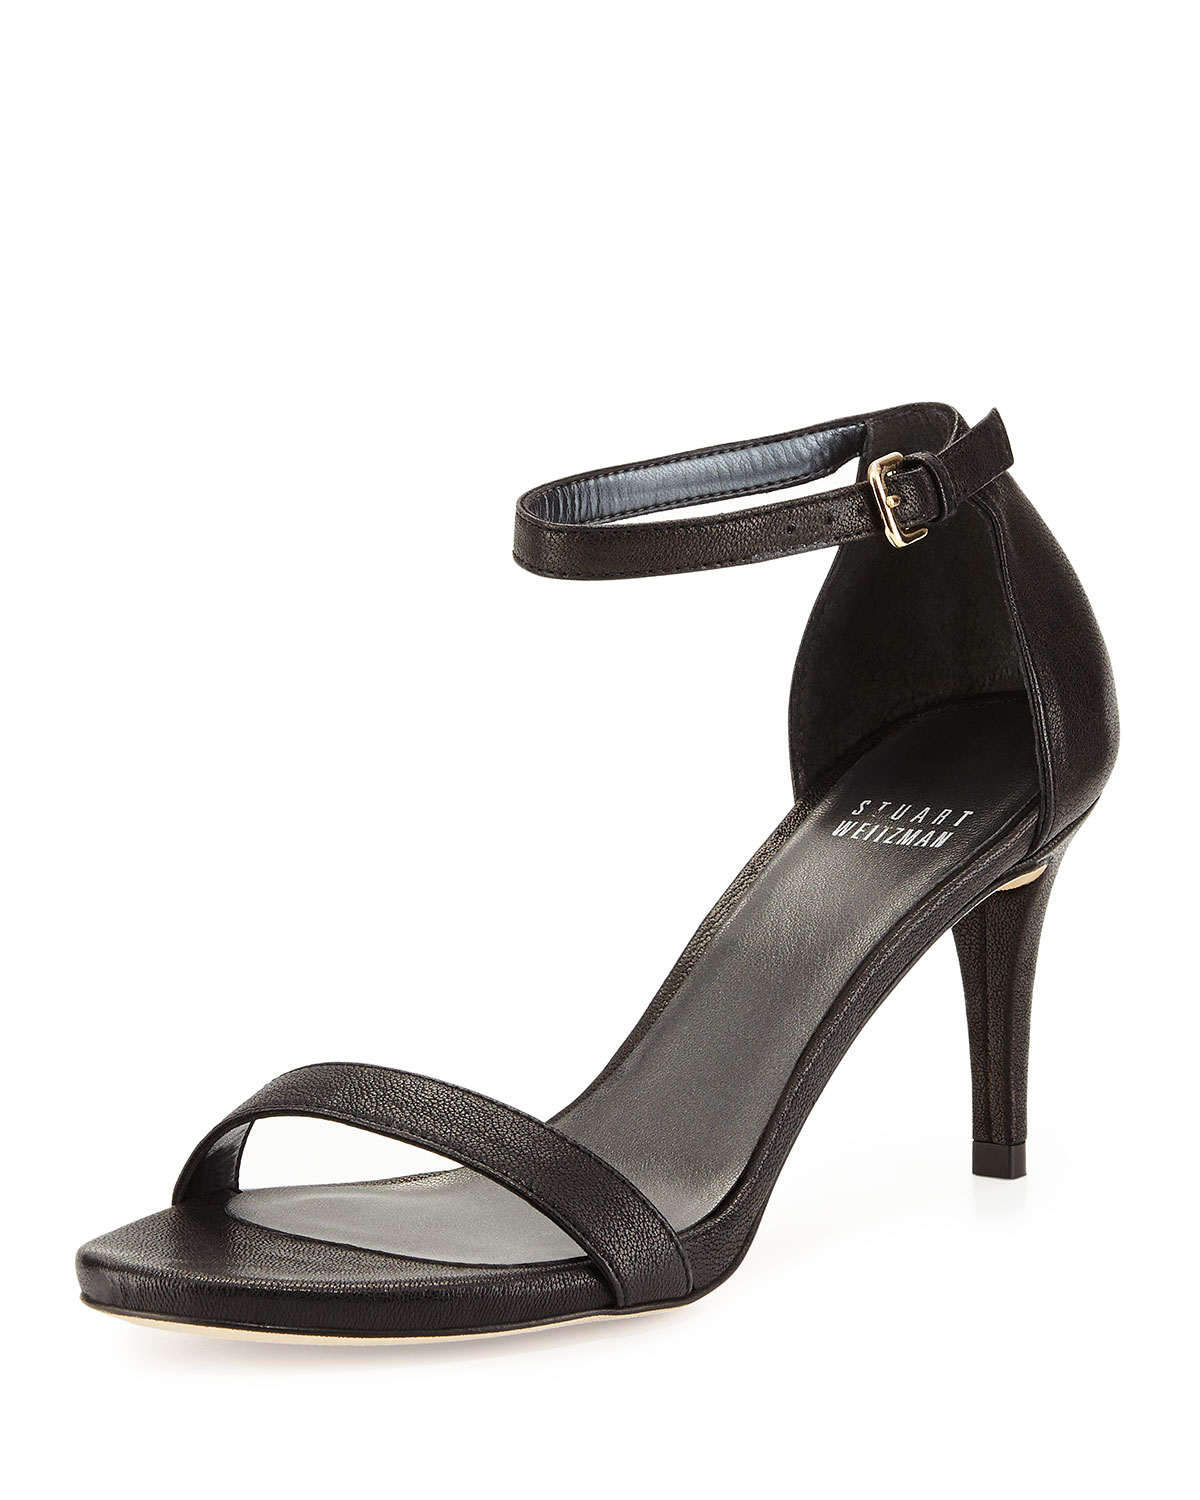 Lyst Stuart Weitzman Nunaked Leather D Orsay Sandals In